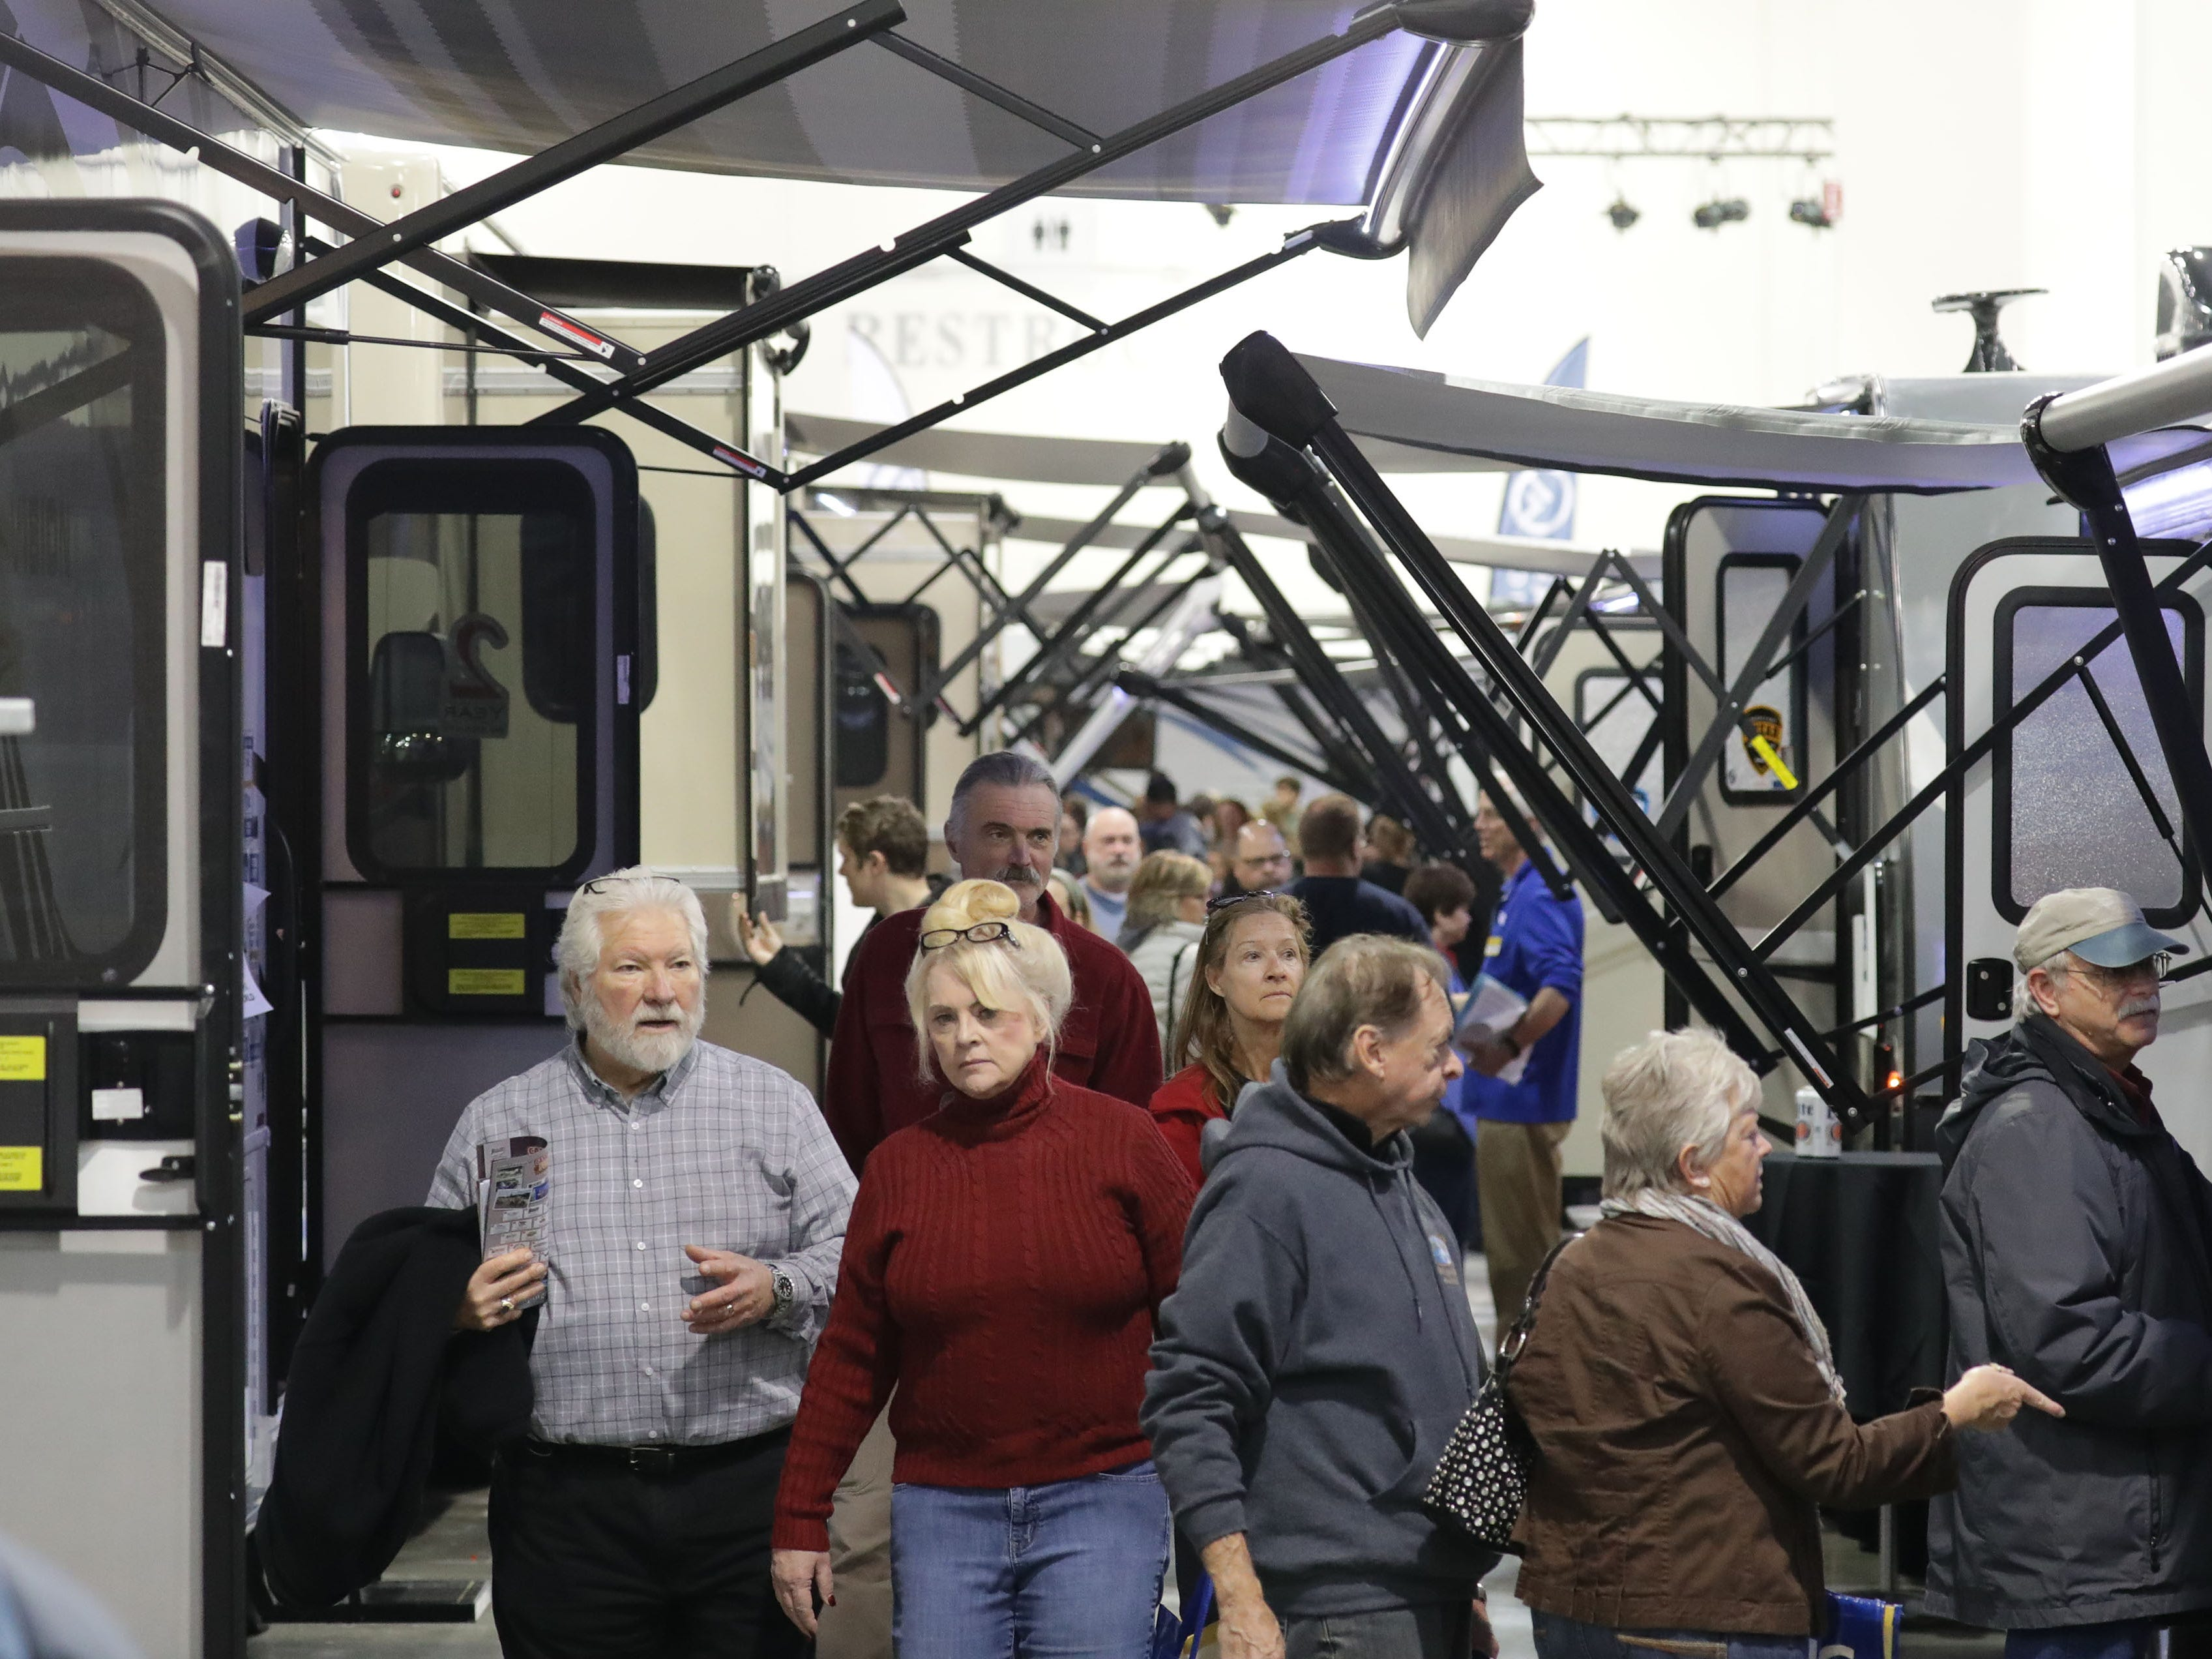 People check out the wide assortment of RVs during the 2019 Wisconsin RV Show at the Wisconsin Center in Milwaukee on Sunday.